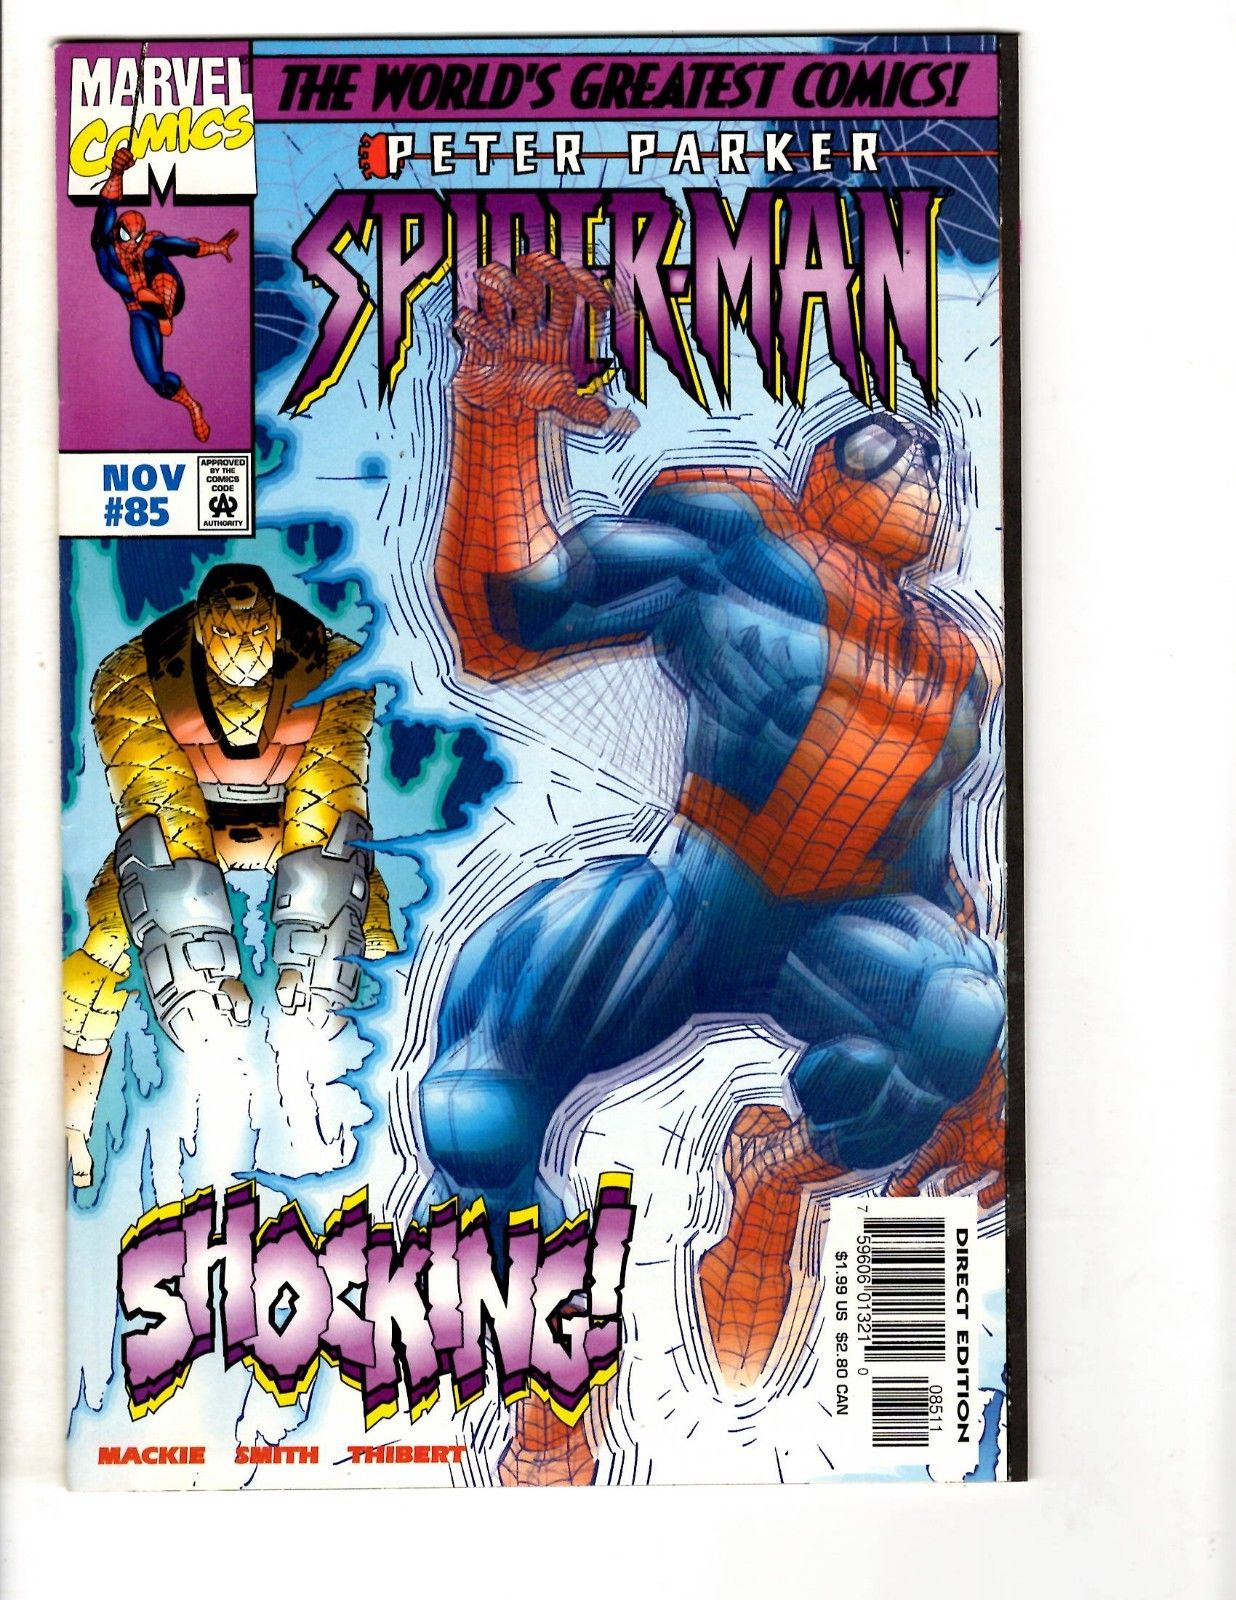 The Amazing Spider-Man #797 High Grade Marvel Comic Book CL83-20